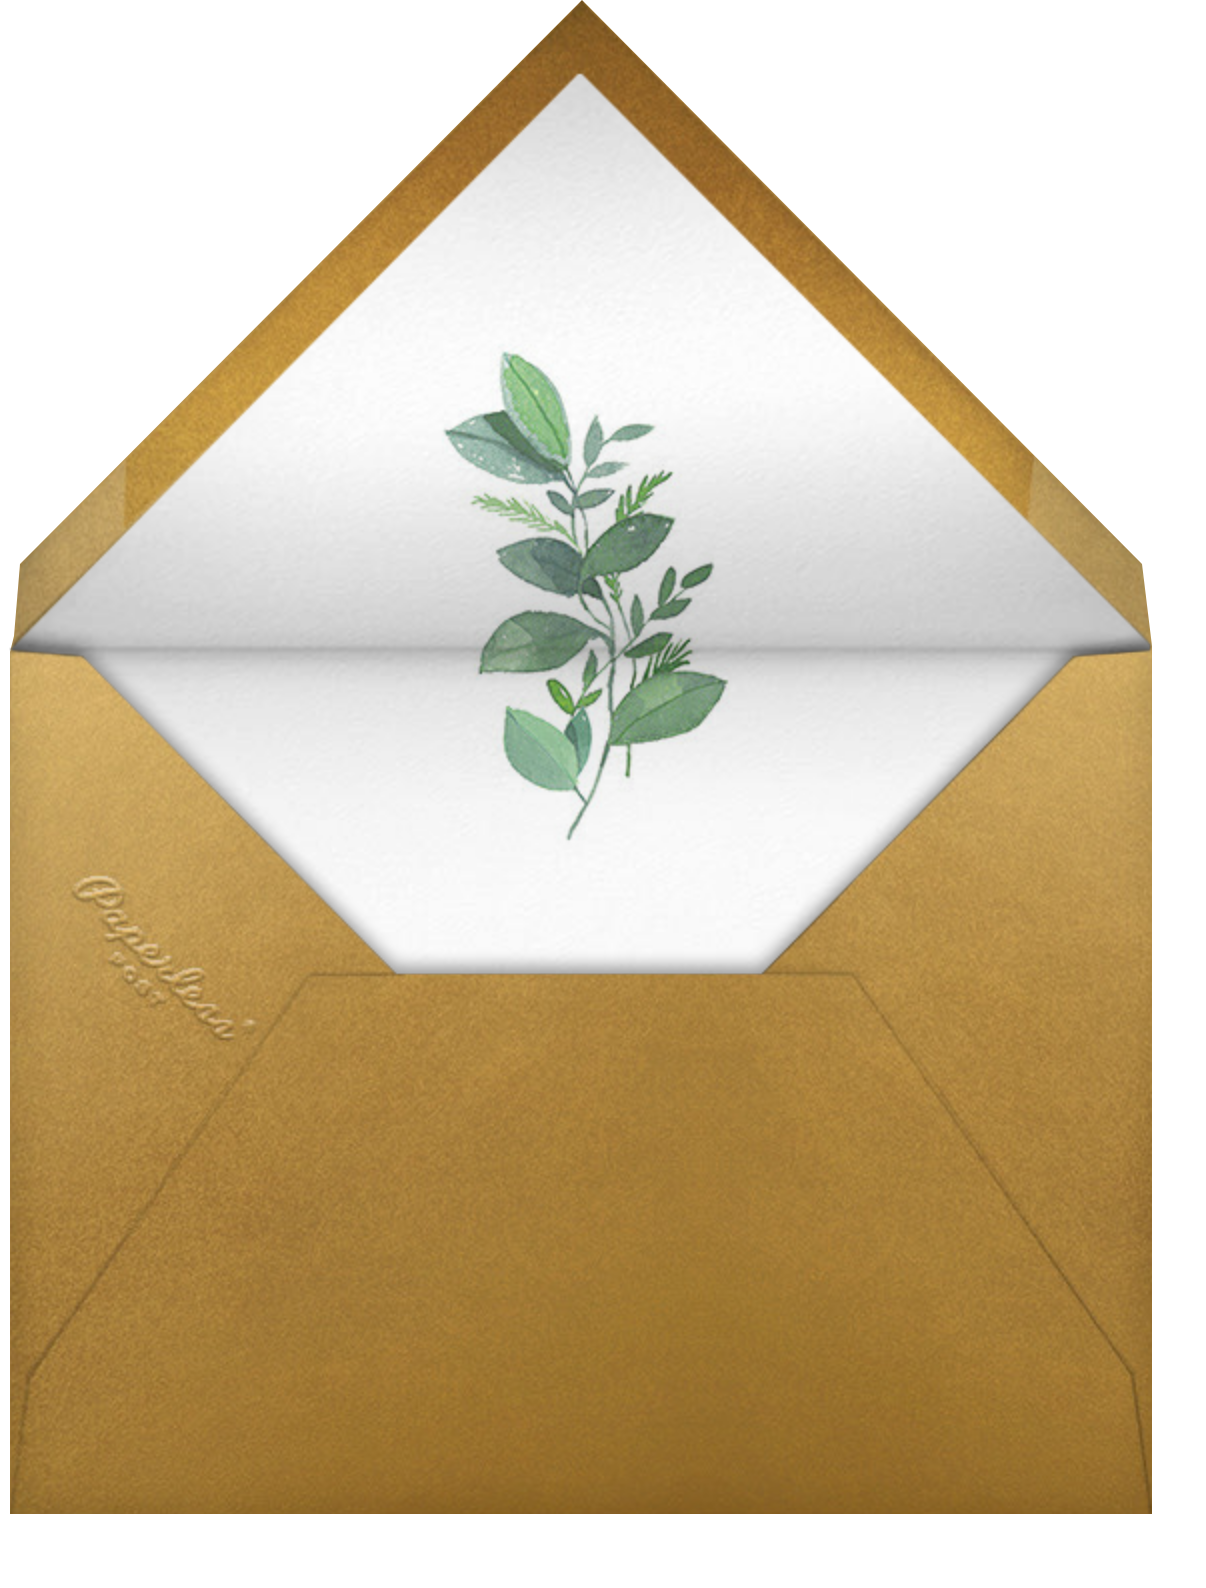 Natural Wreath (Invitation) - Paperless Post - All - envelope back